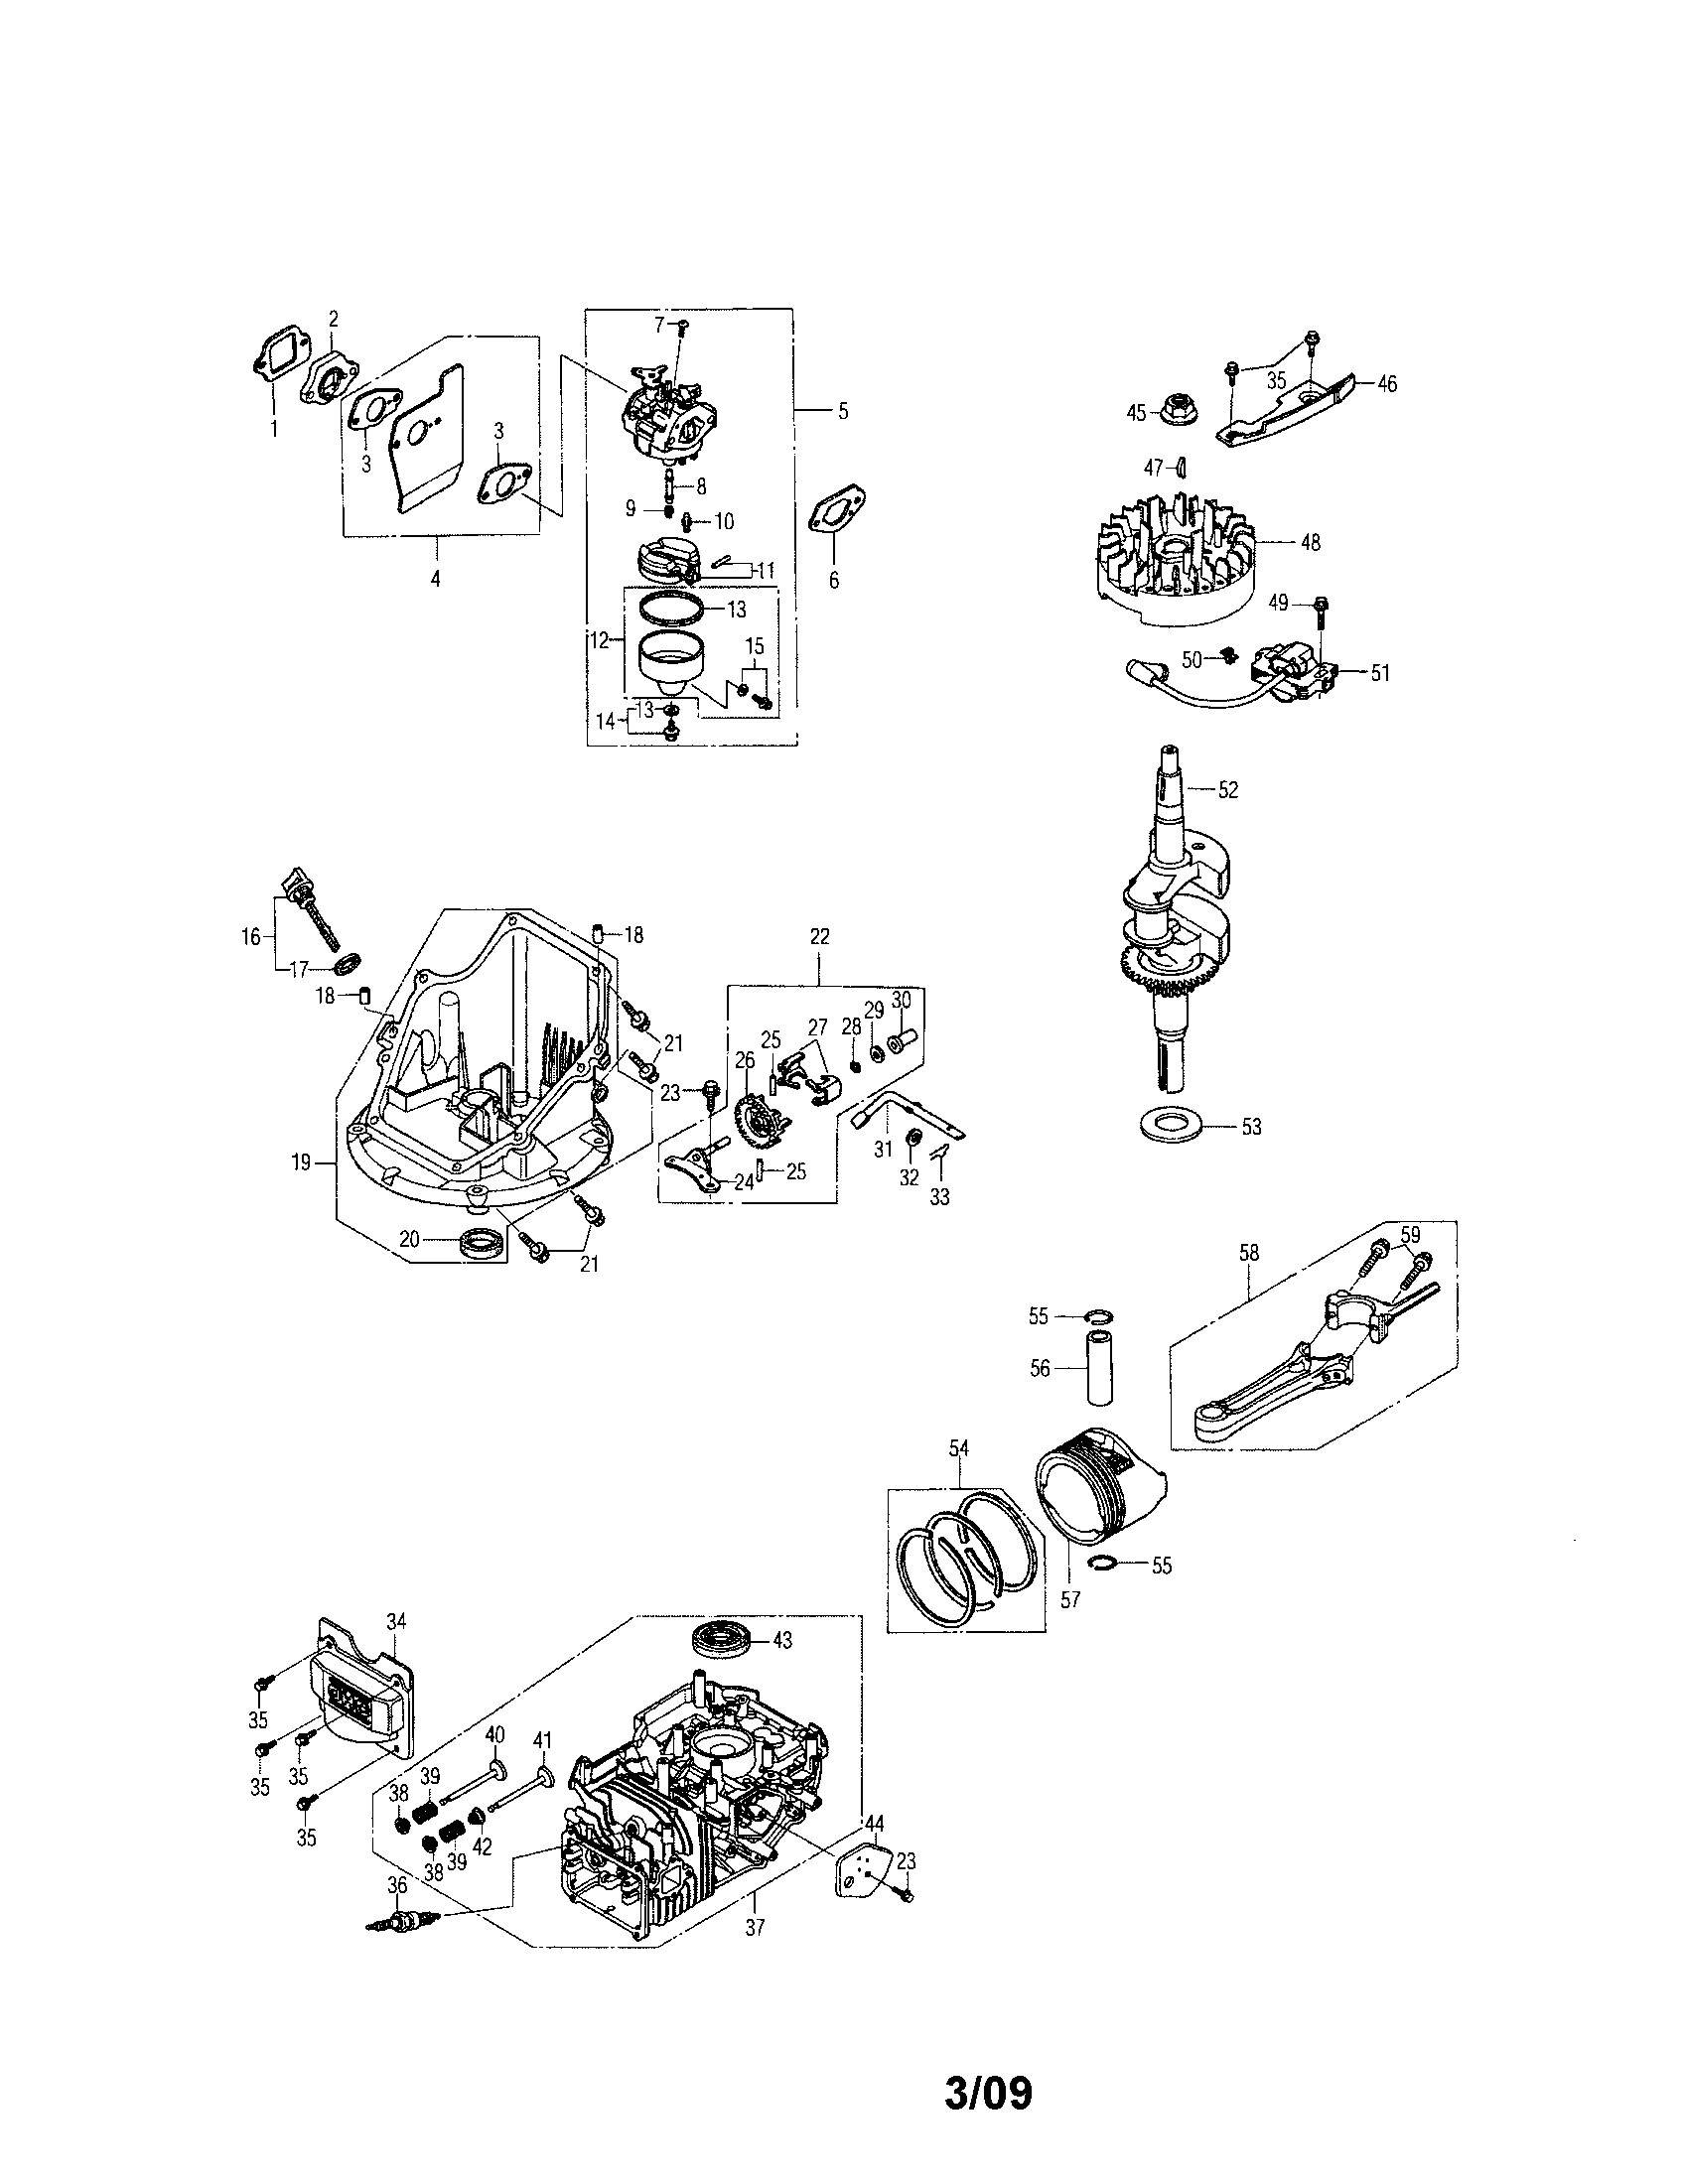 Honda Gcv160 Engine Diagram